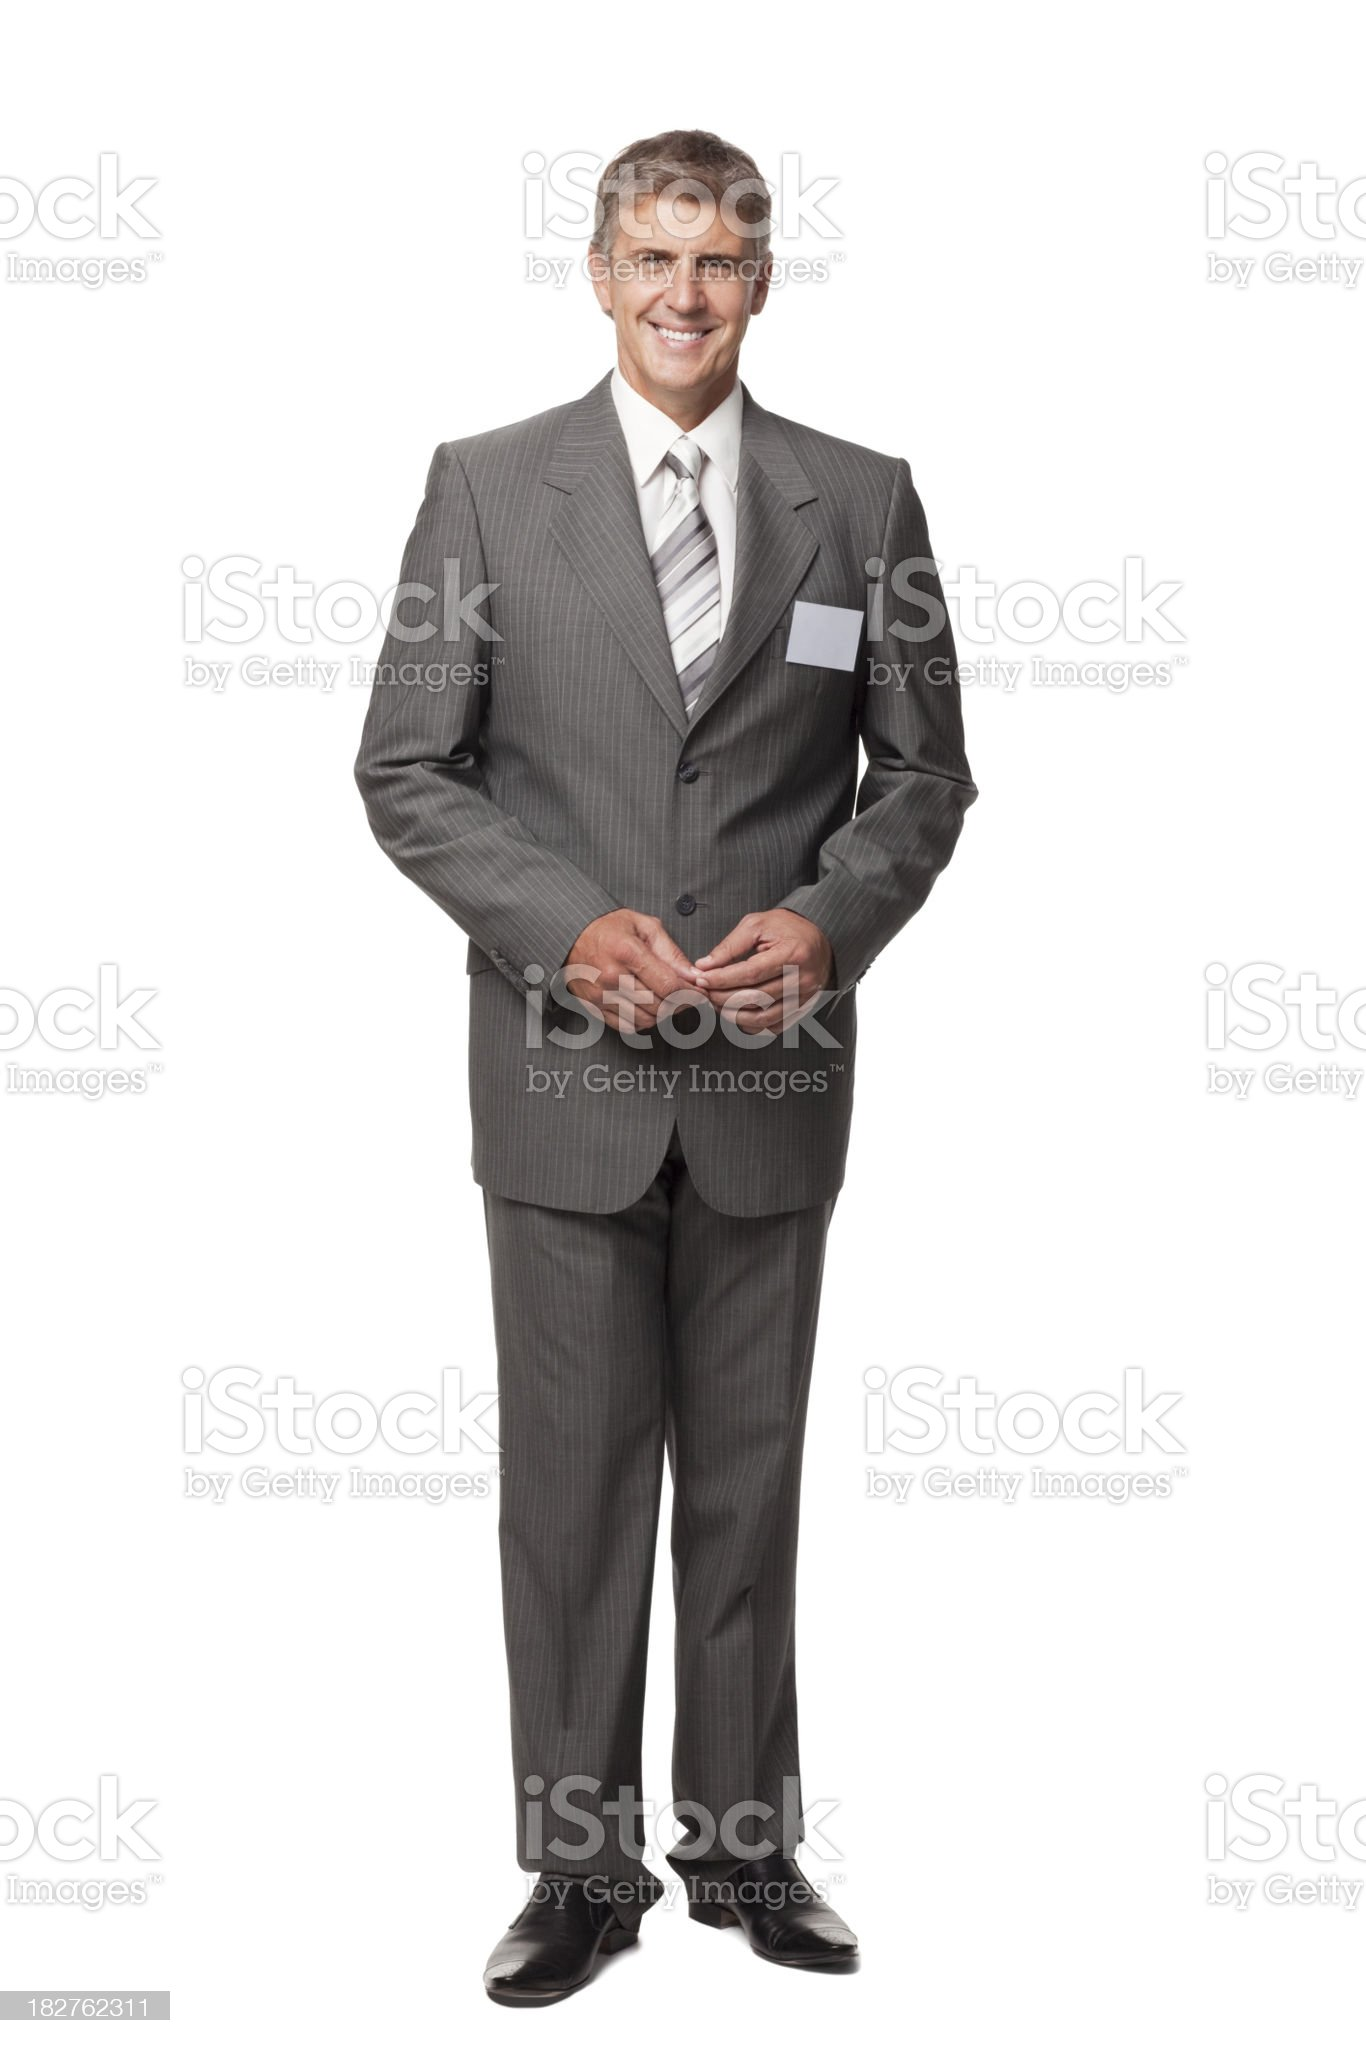 Smiling businessman with blank name tag royalty-free stock photo